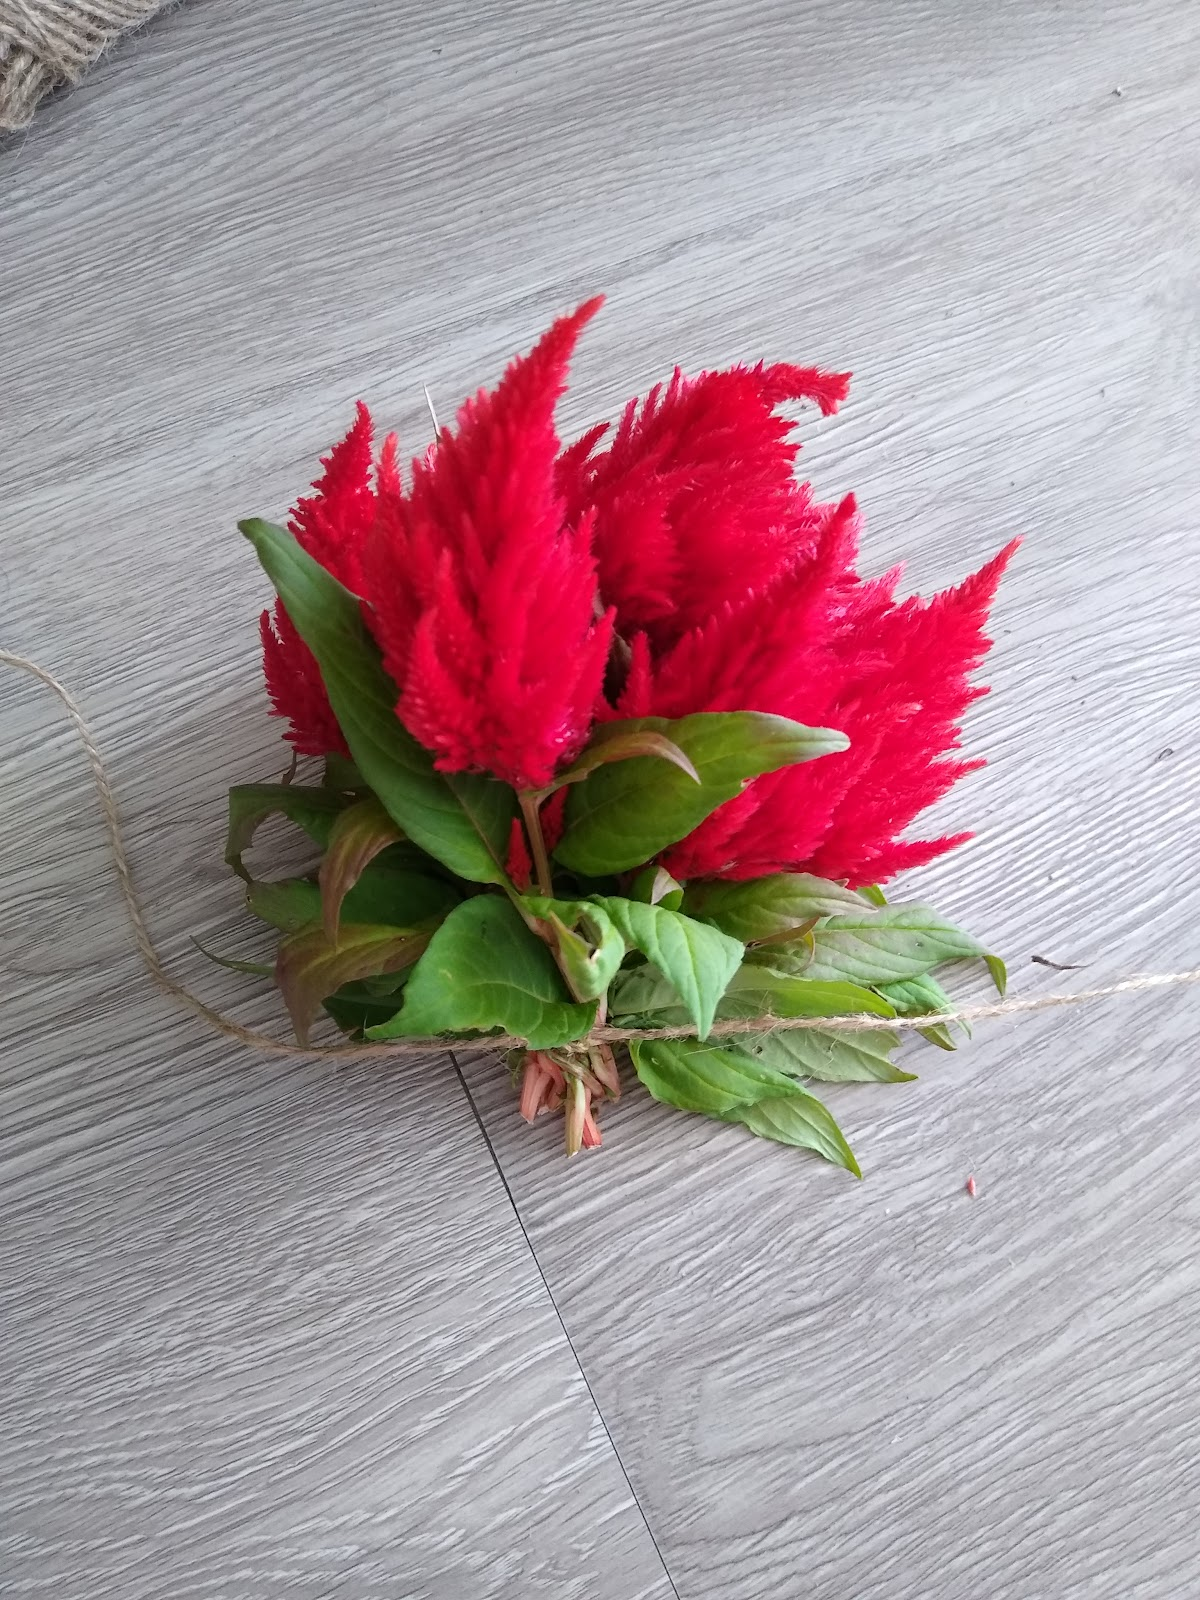 bundled celosia picture